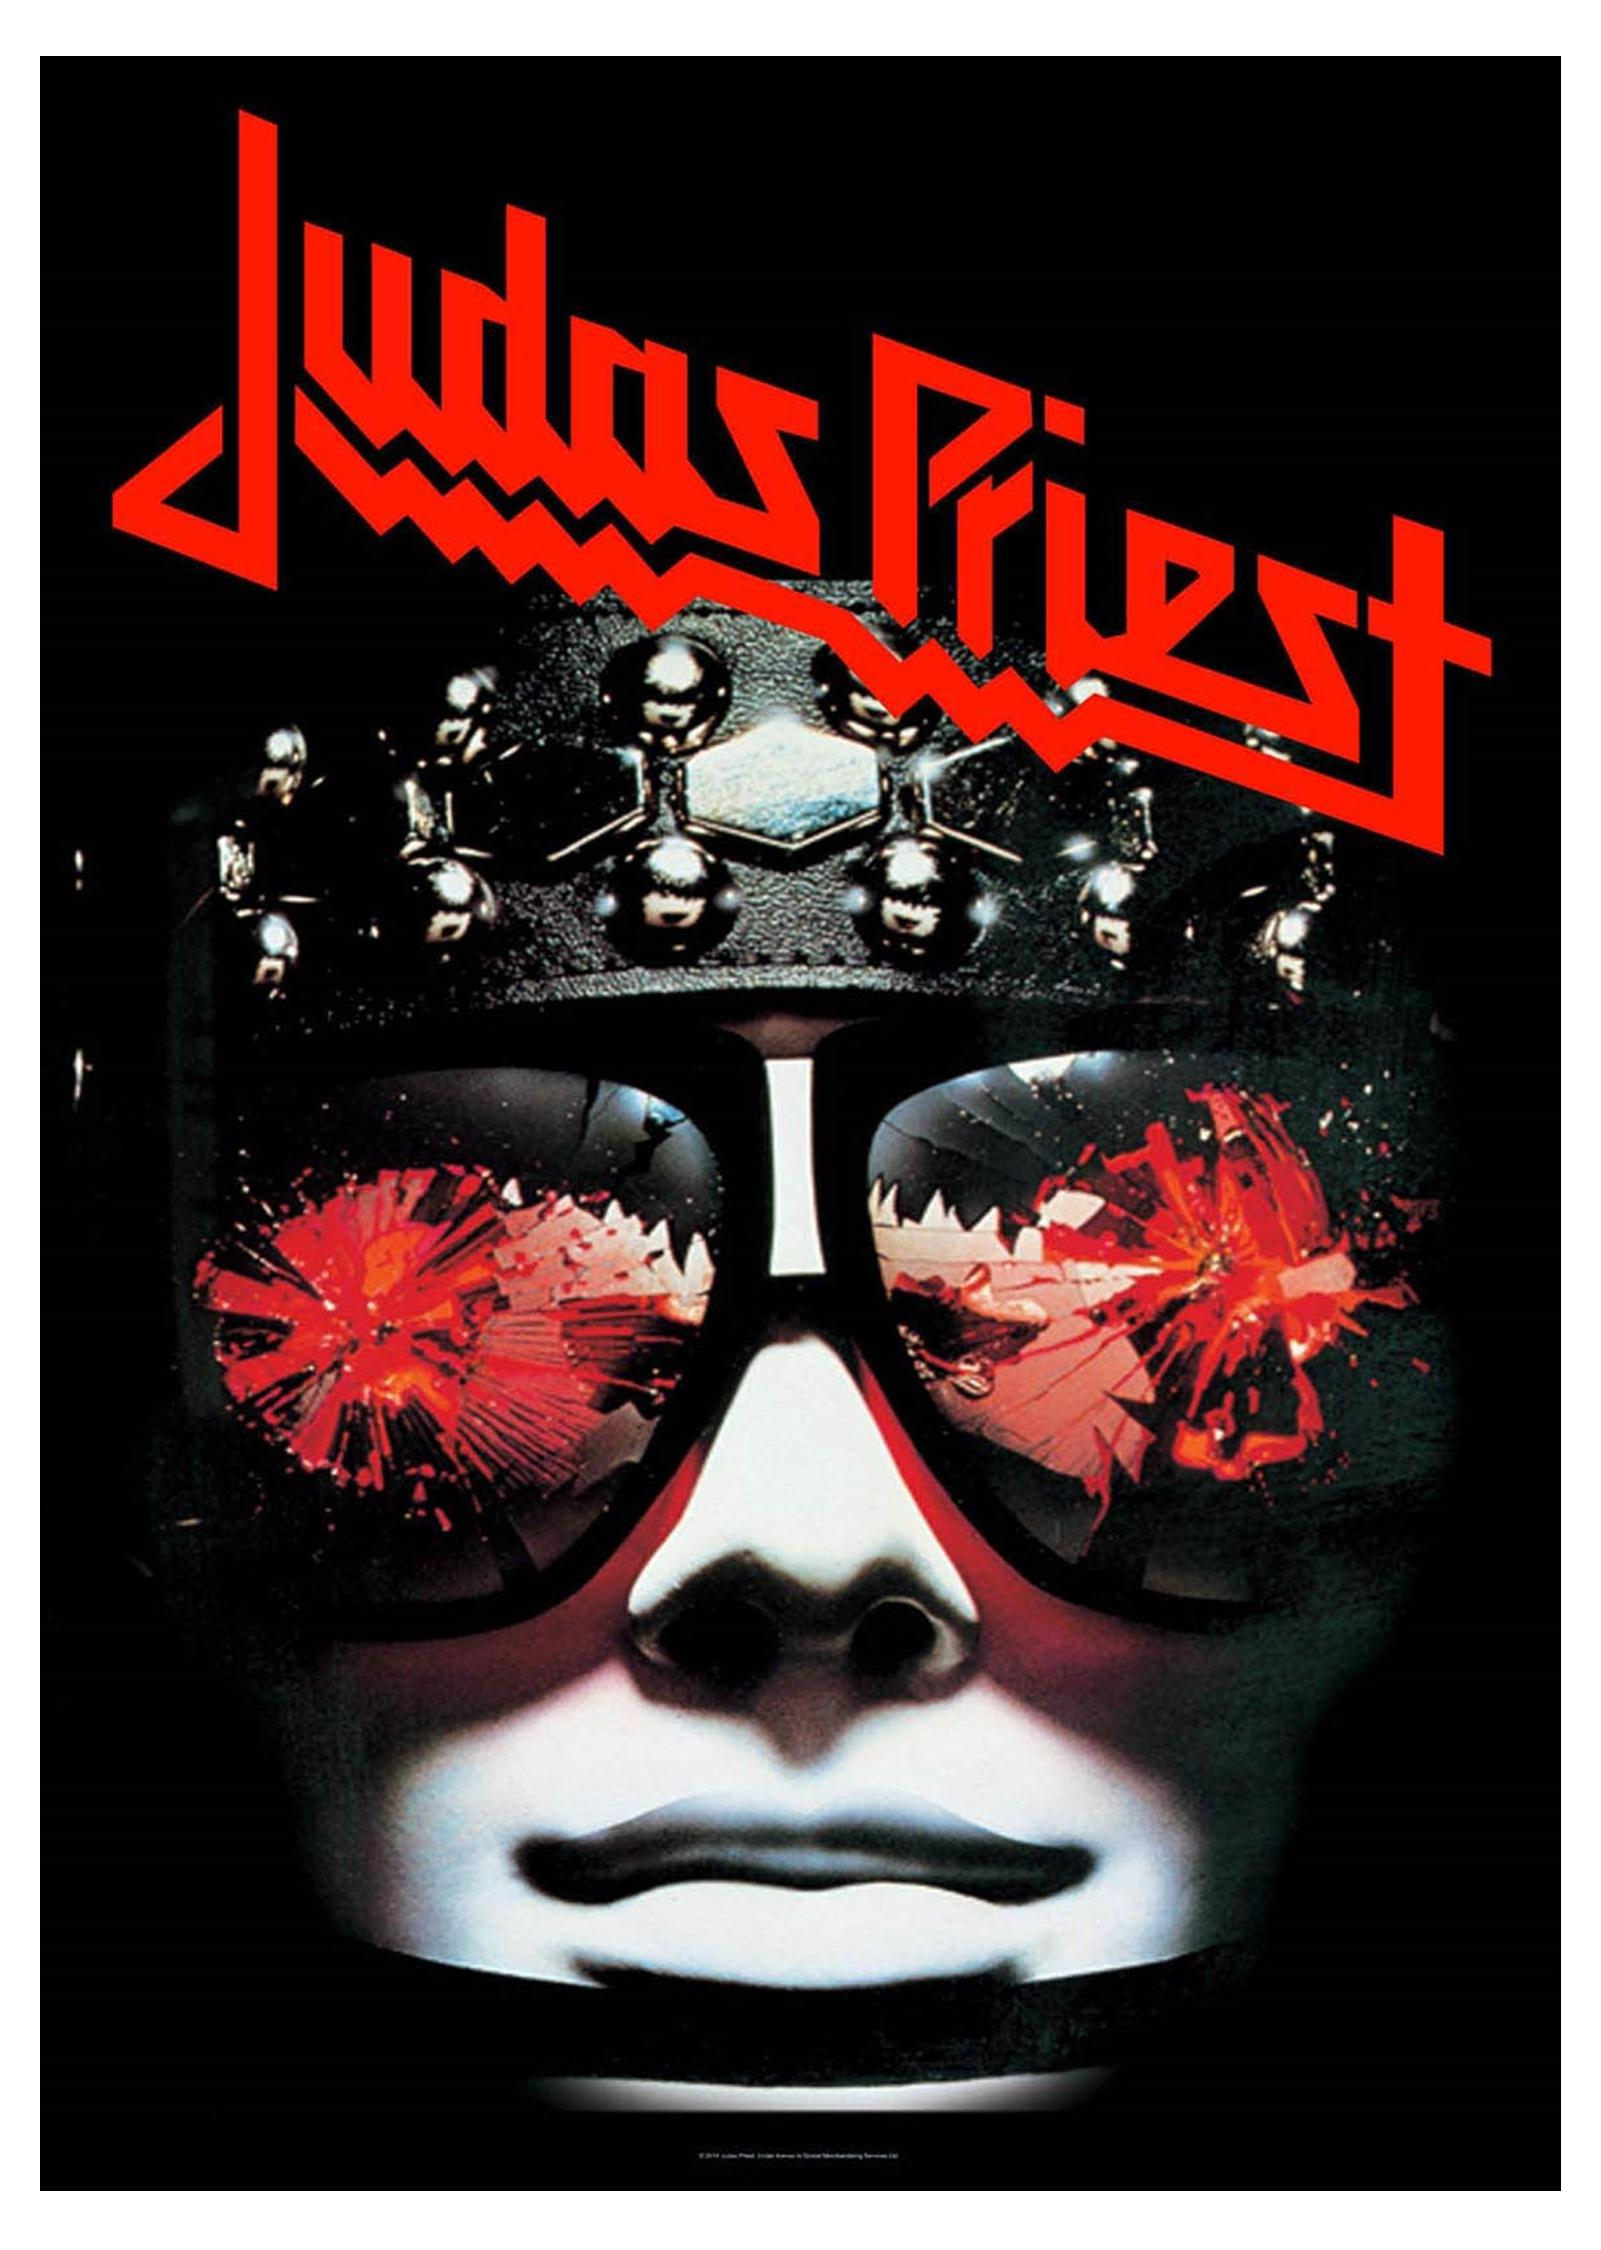 judas priest poster hell bent for leather official new textile flag 70cm x 106cm